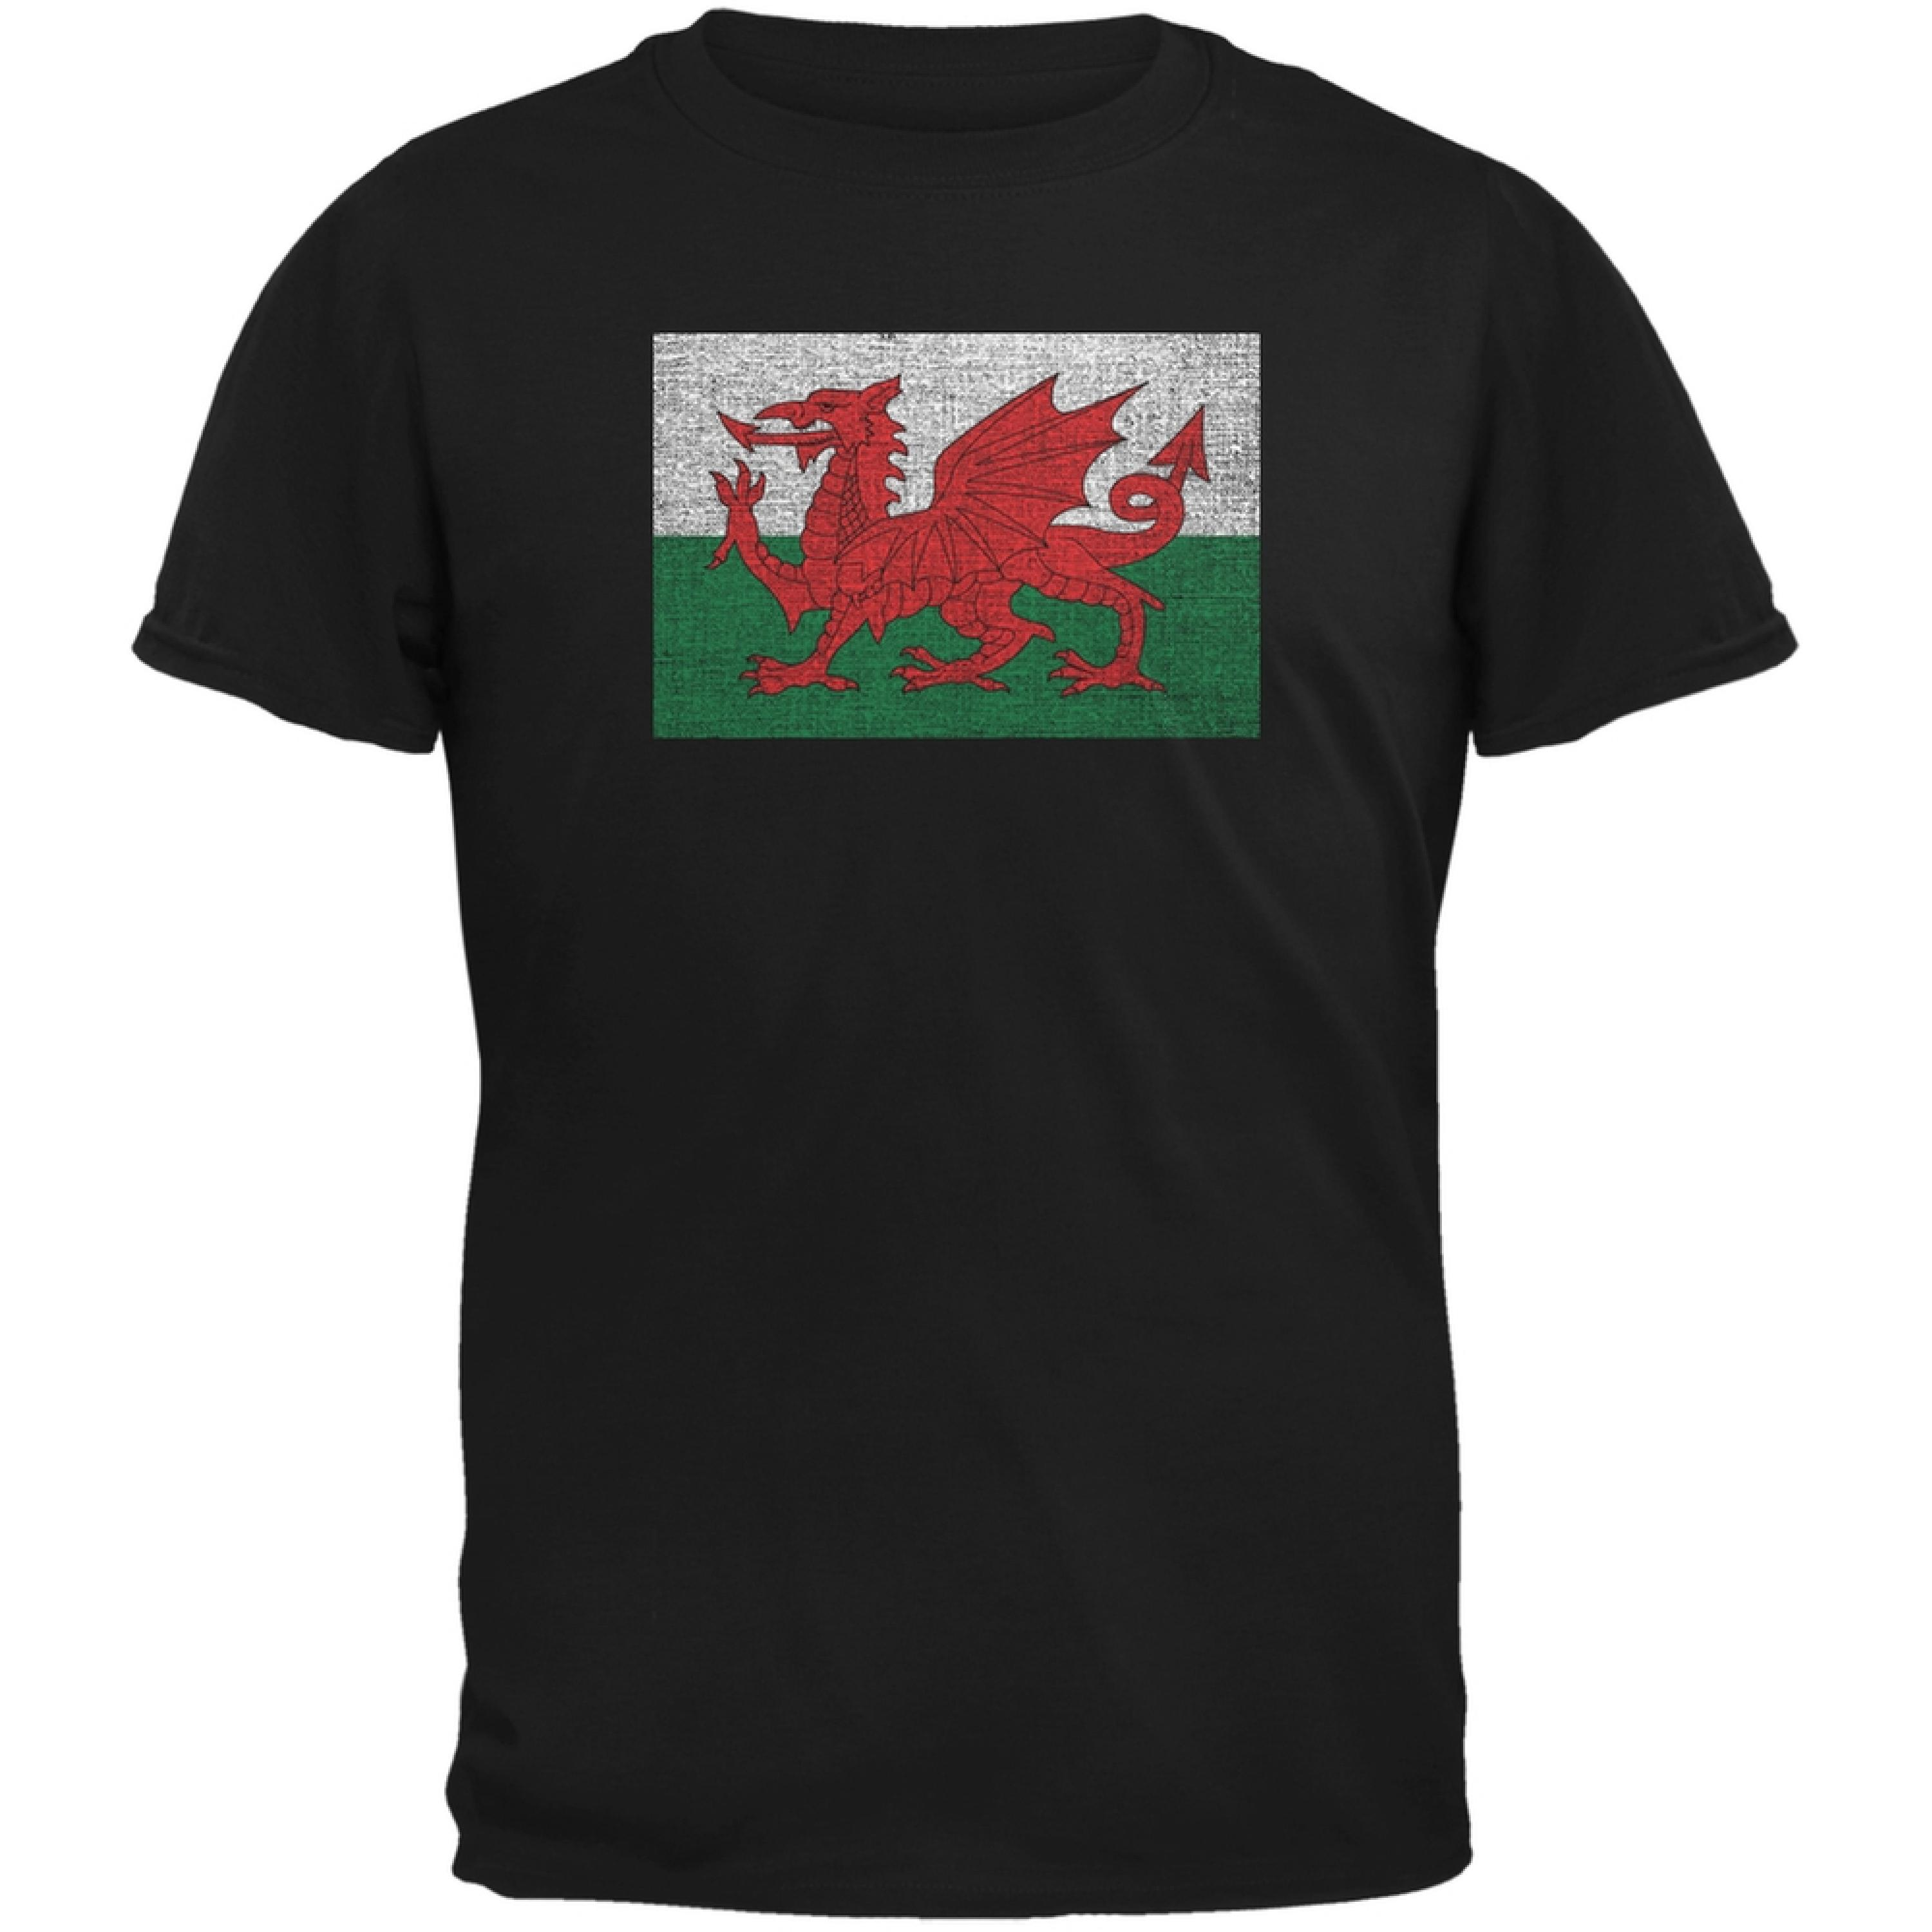 Welsh Flag Distressed Black Adult T-Shirt